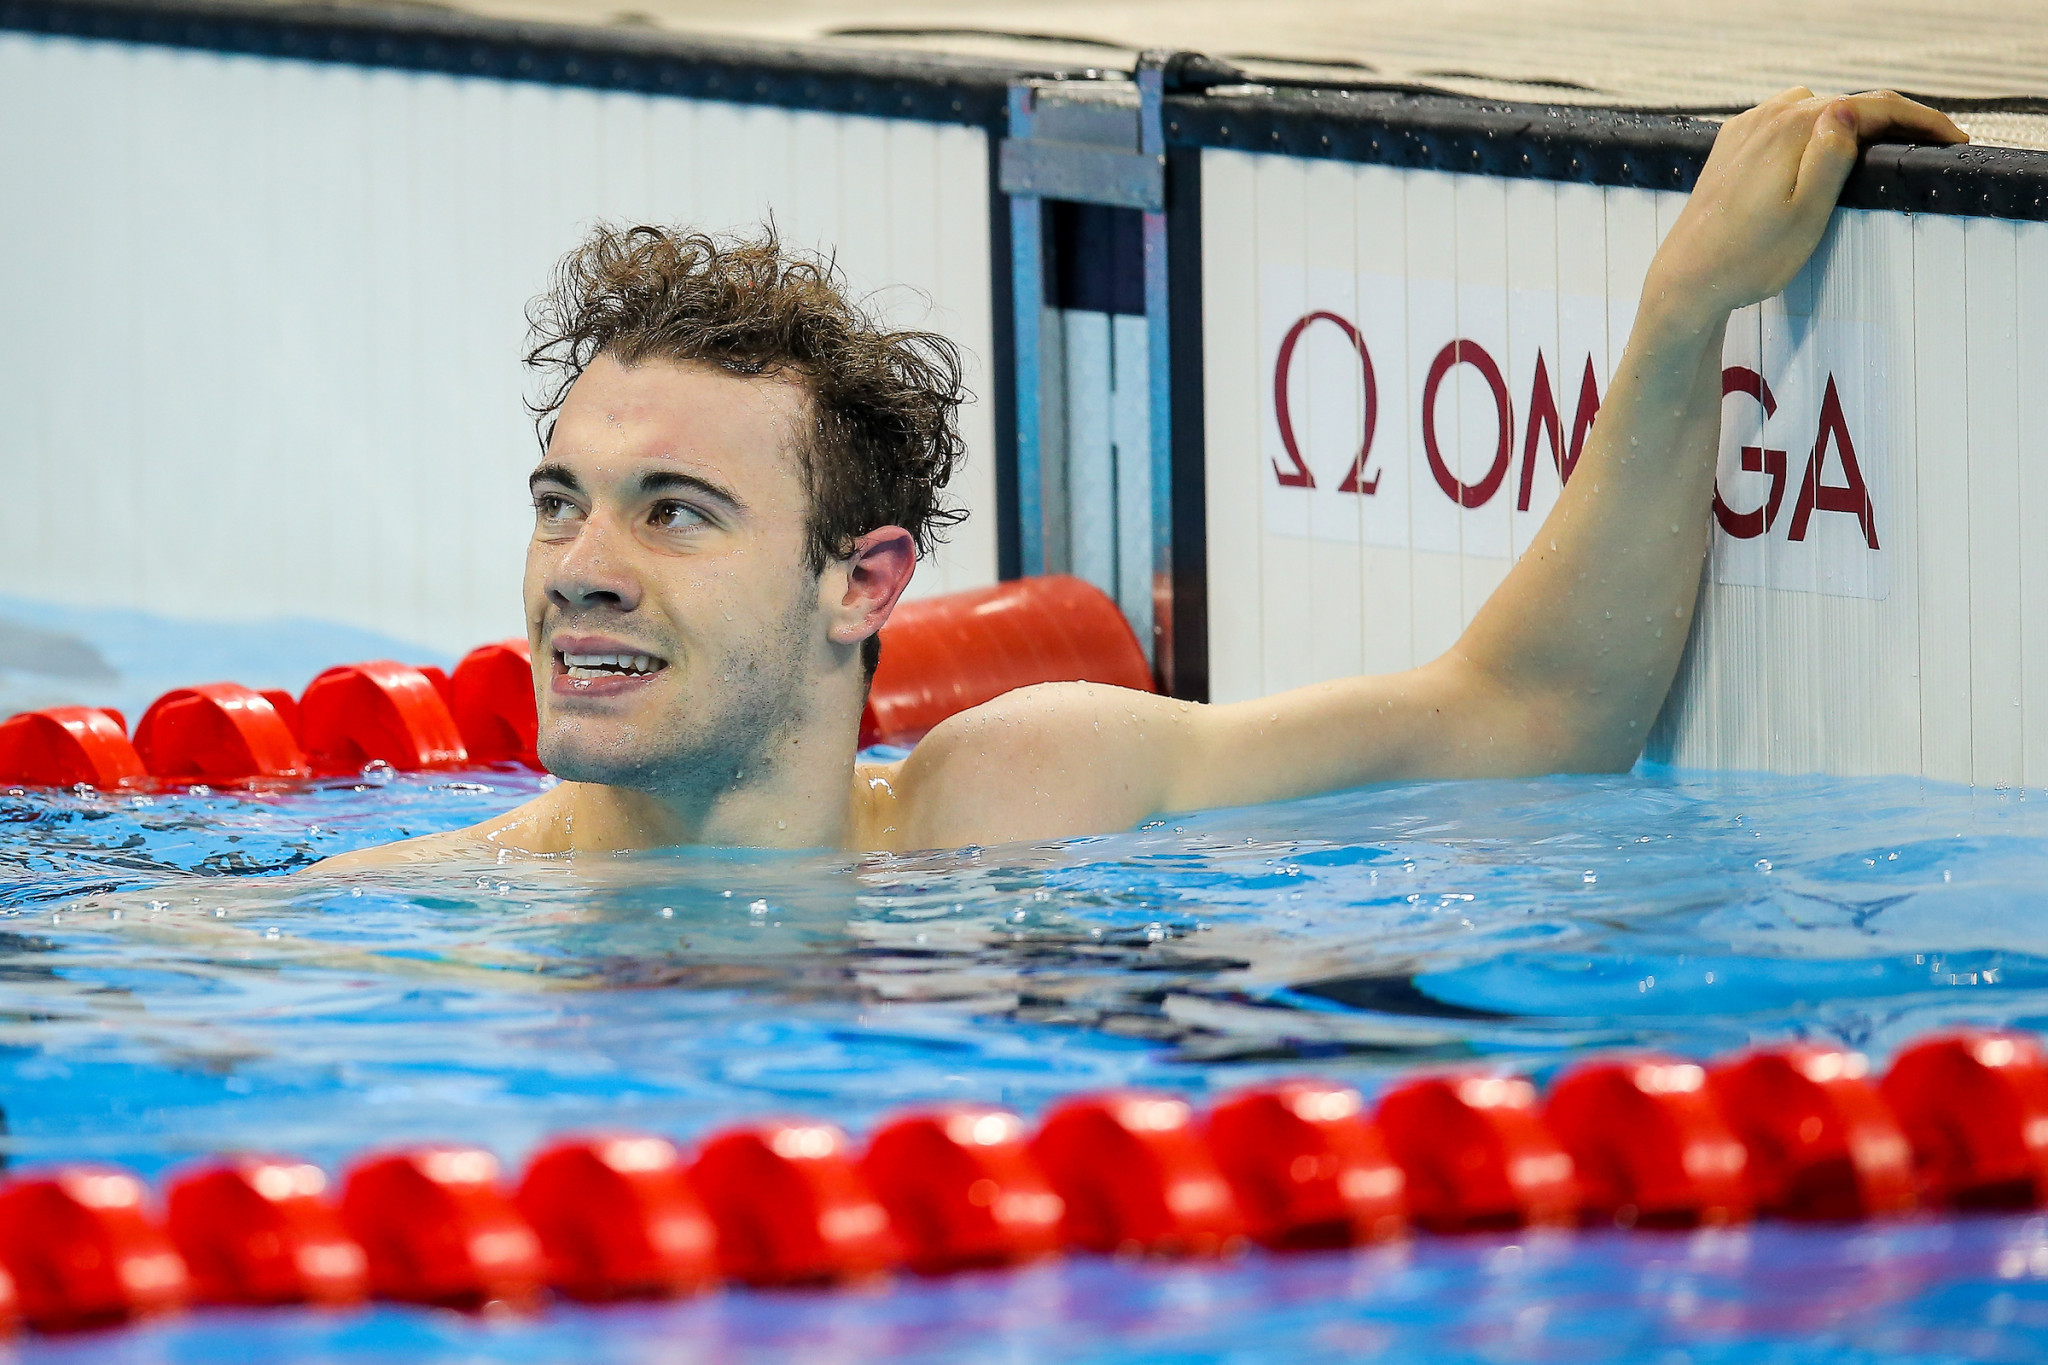 Paralympic swimming champion retires aged 21